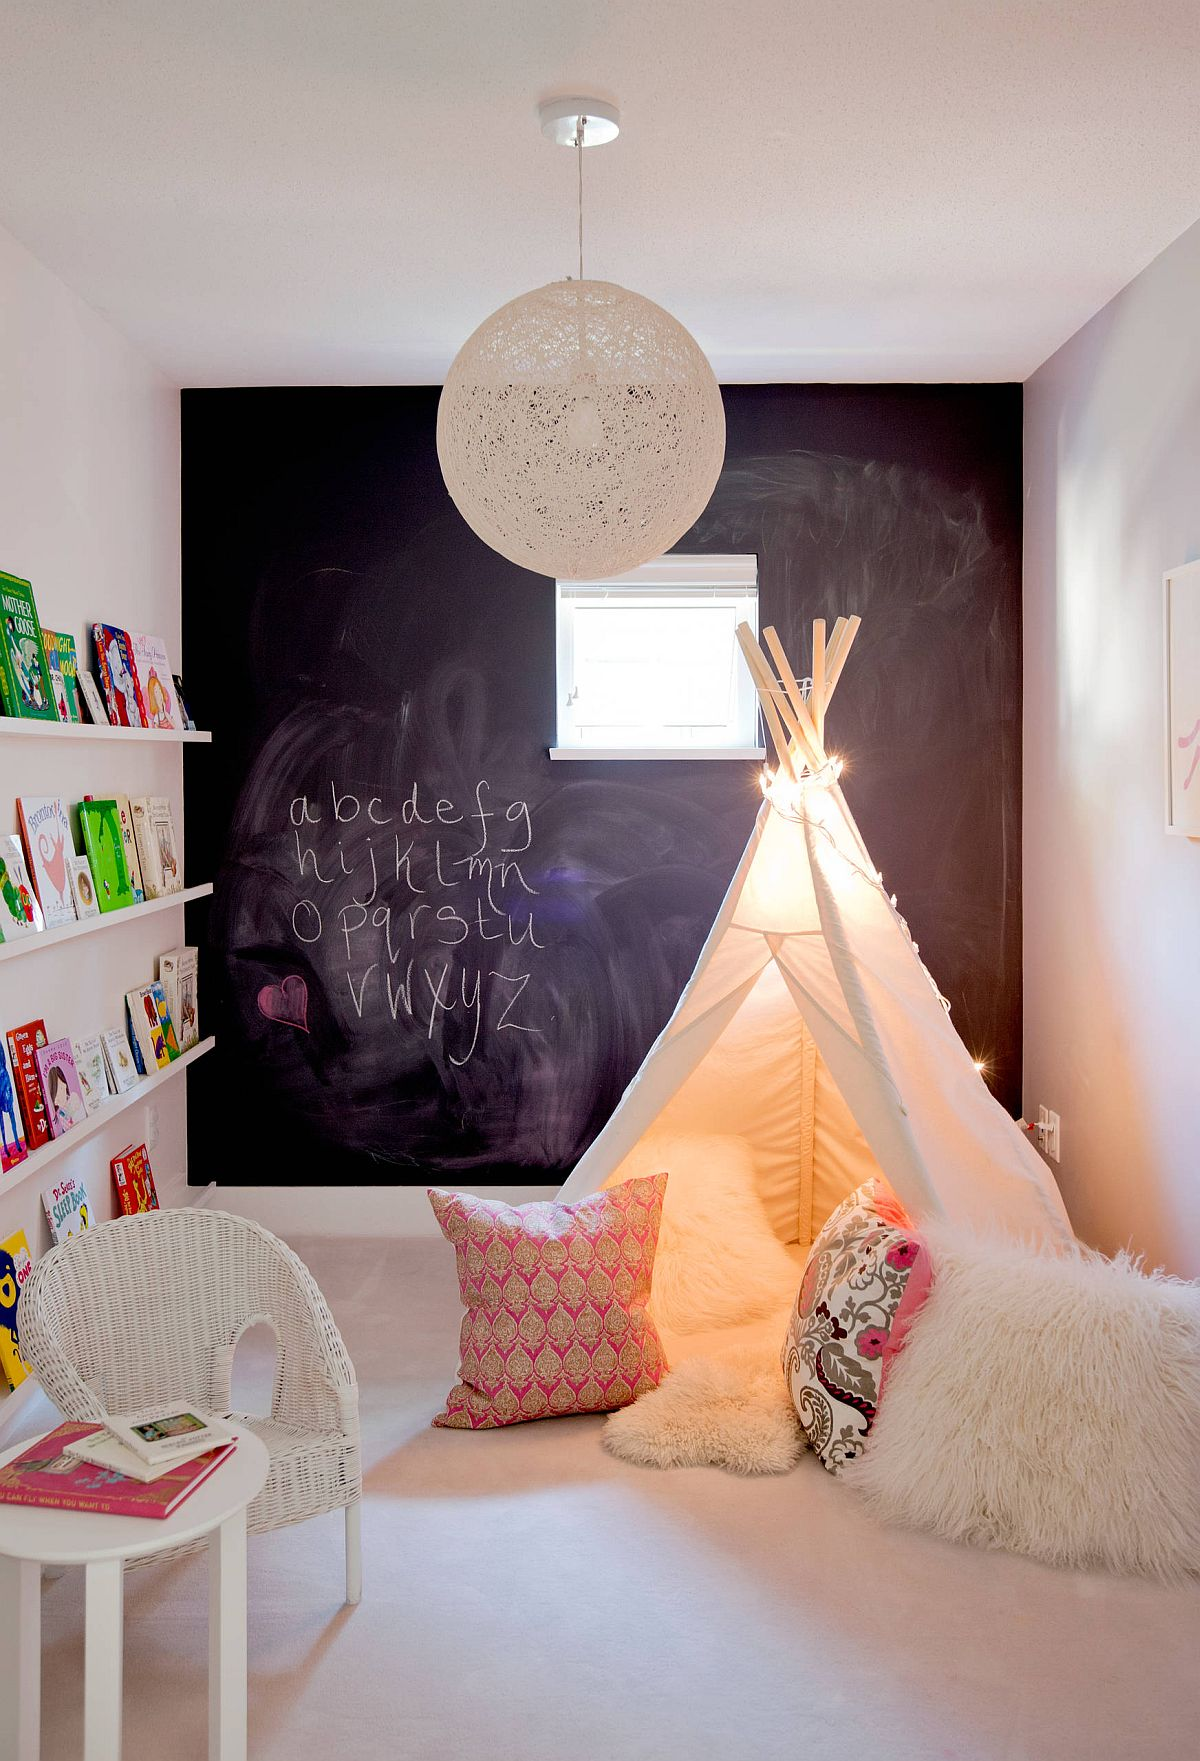 Small-eclectic-style-kids-playroom-with-chalkboard-wall-and-carpeted-floor-16289